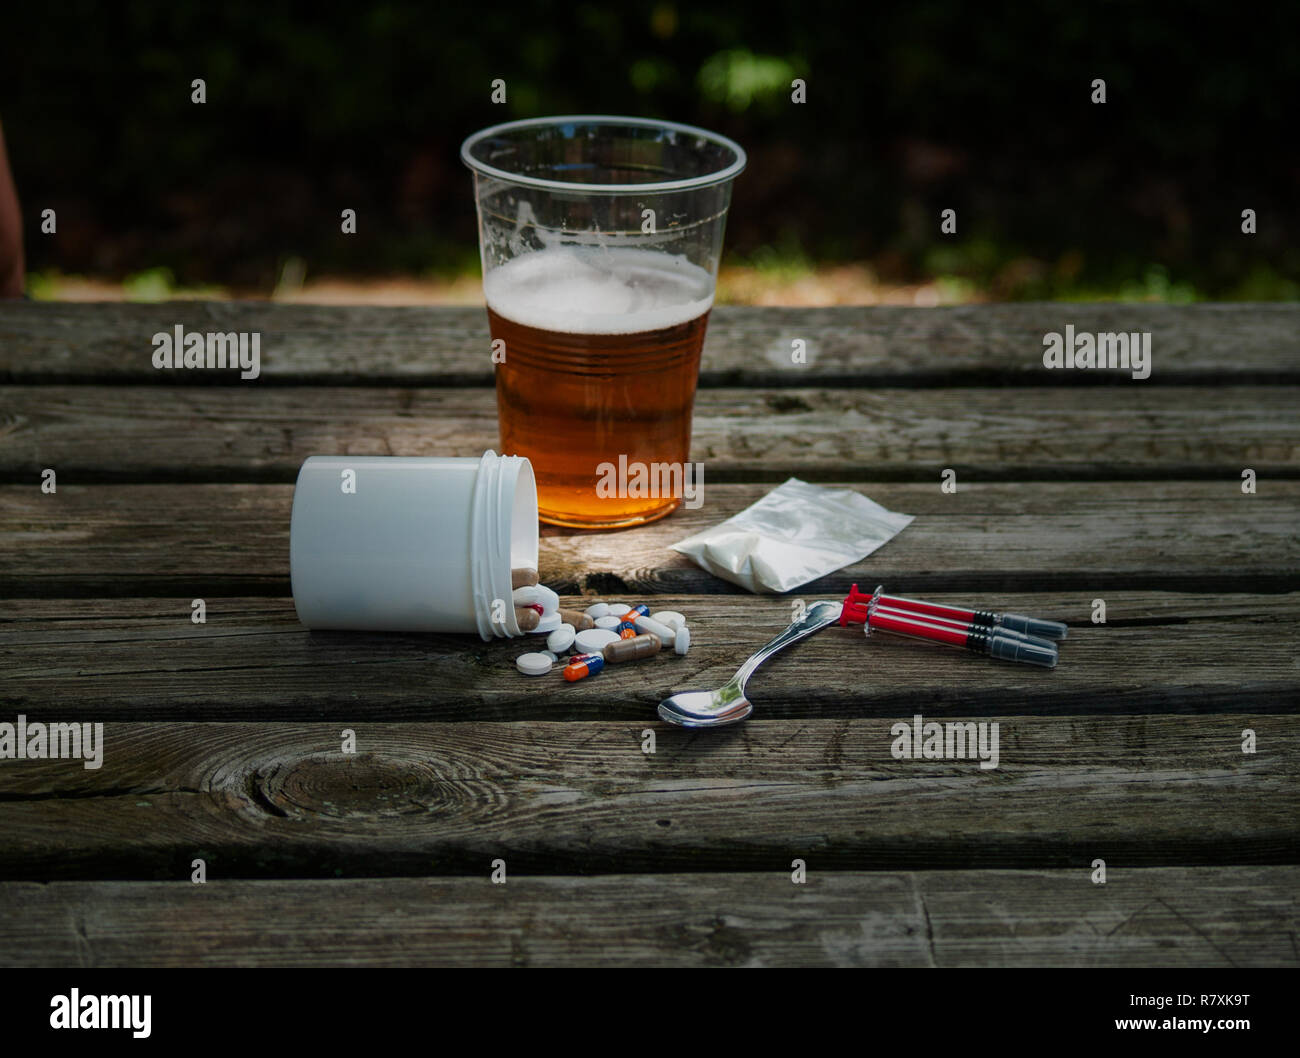 A glass of beer, pills, barbiturates, drugs, cocaine, heroin, a syringe and a spoon on a table. Drug addiction concept - Stock Image